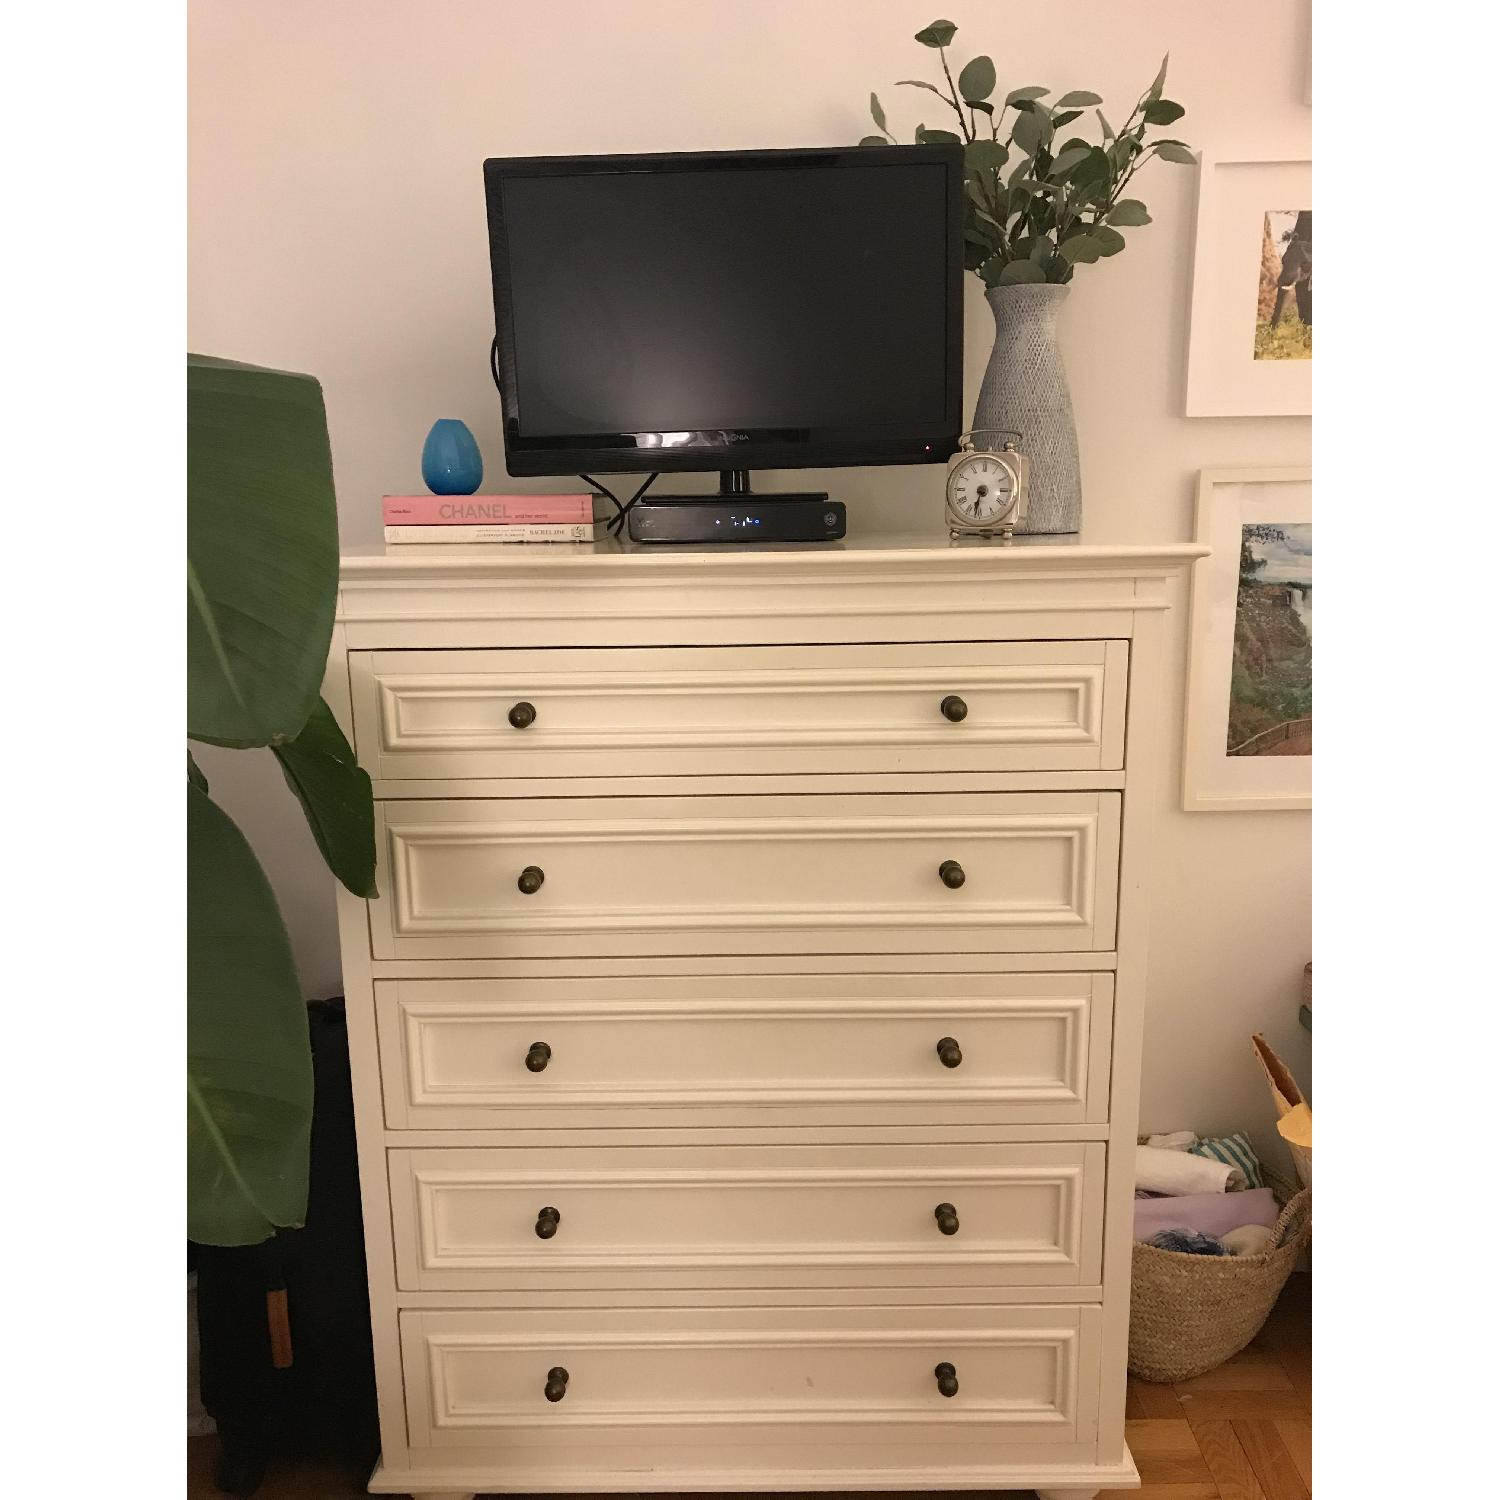 Pottery Barn Teen Chelsea Tall Dresser-0